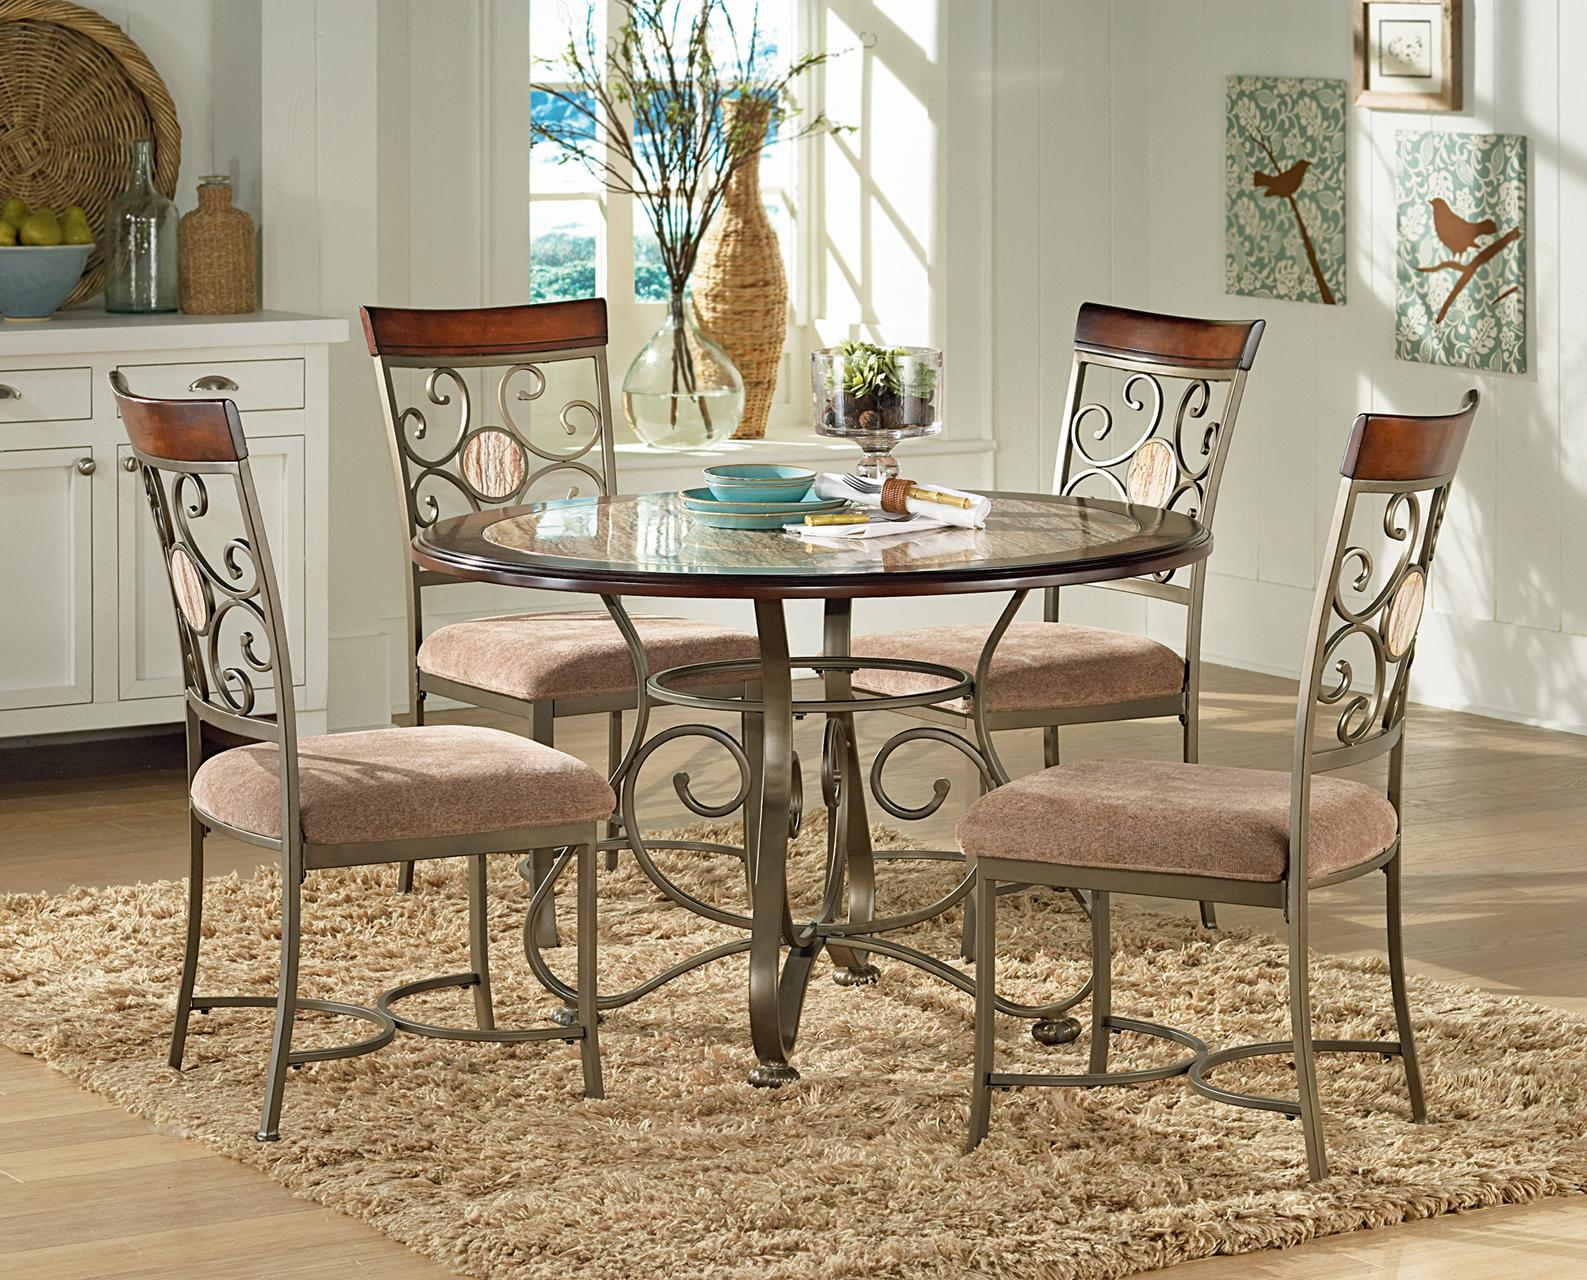 Thompson 5 Piece Metal Base Table and Suncatcher Dining Chair Set by Steve  Silver at Knight Furniture & Mattress